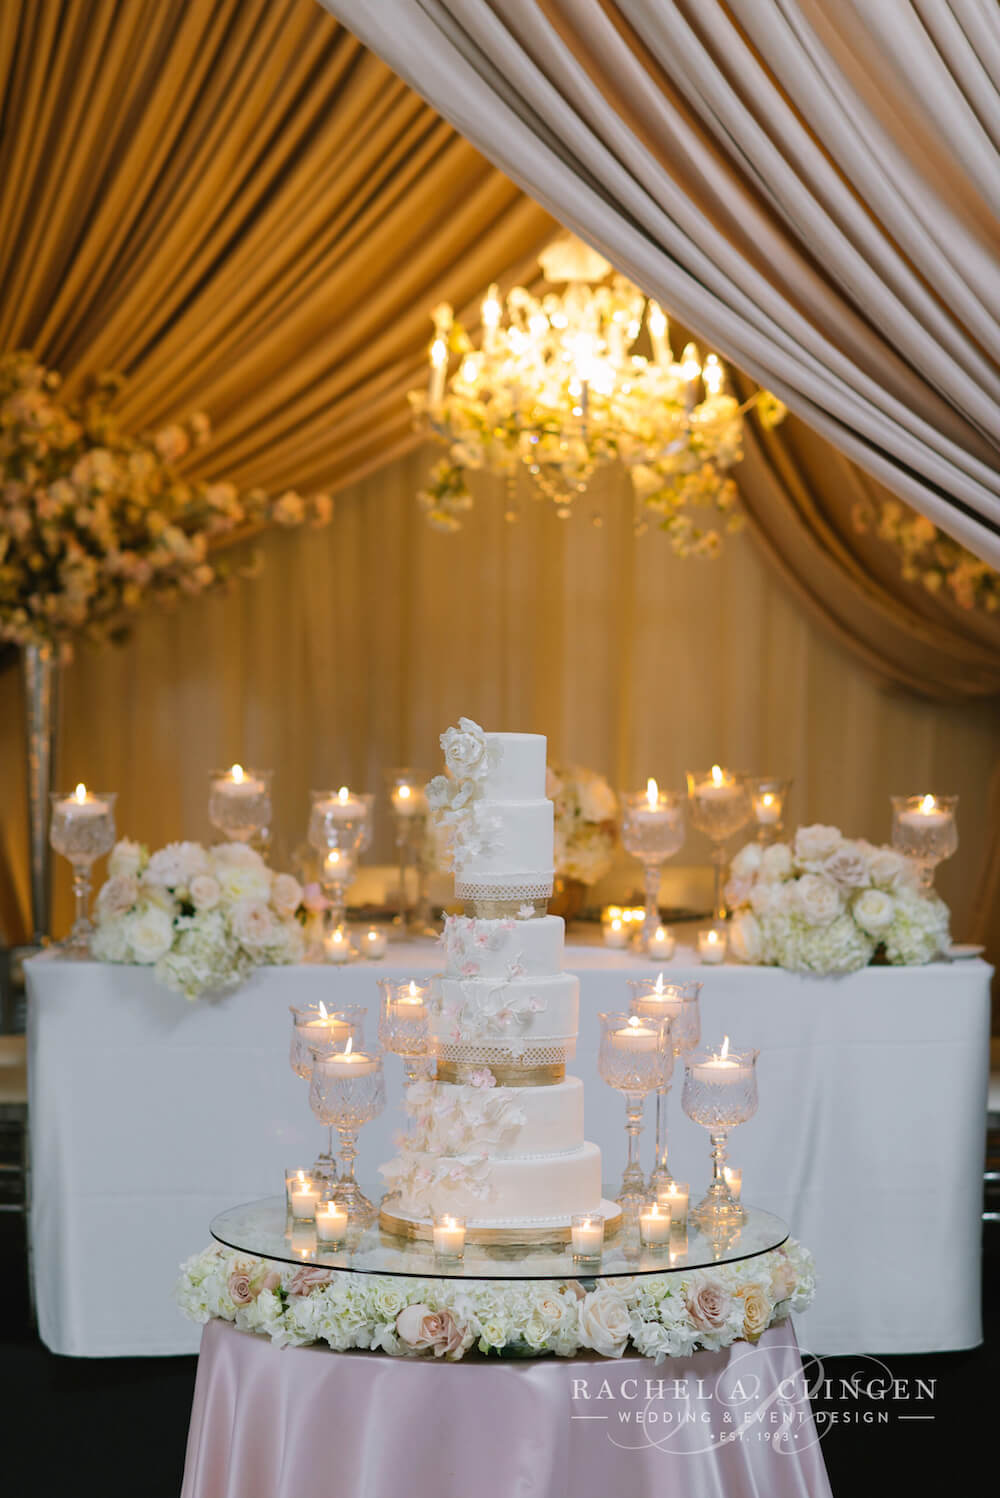 Weddings At Grand Luxe Archives Rachel A Clingen